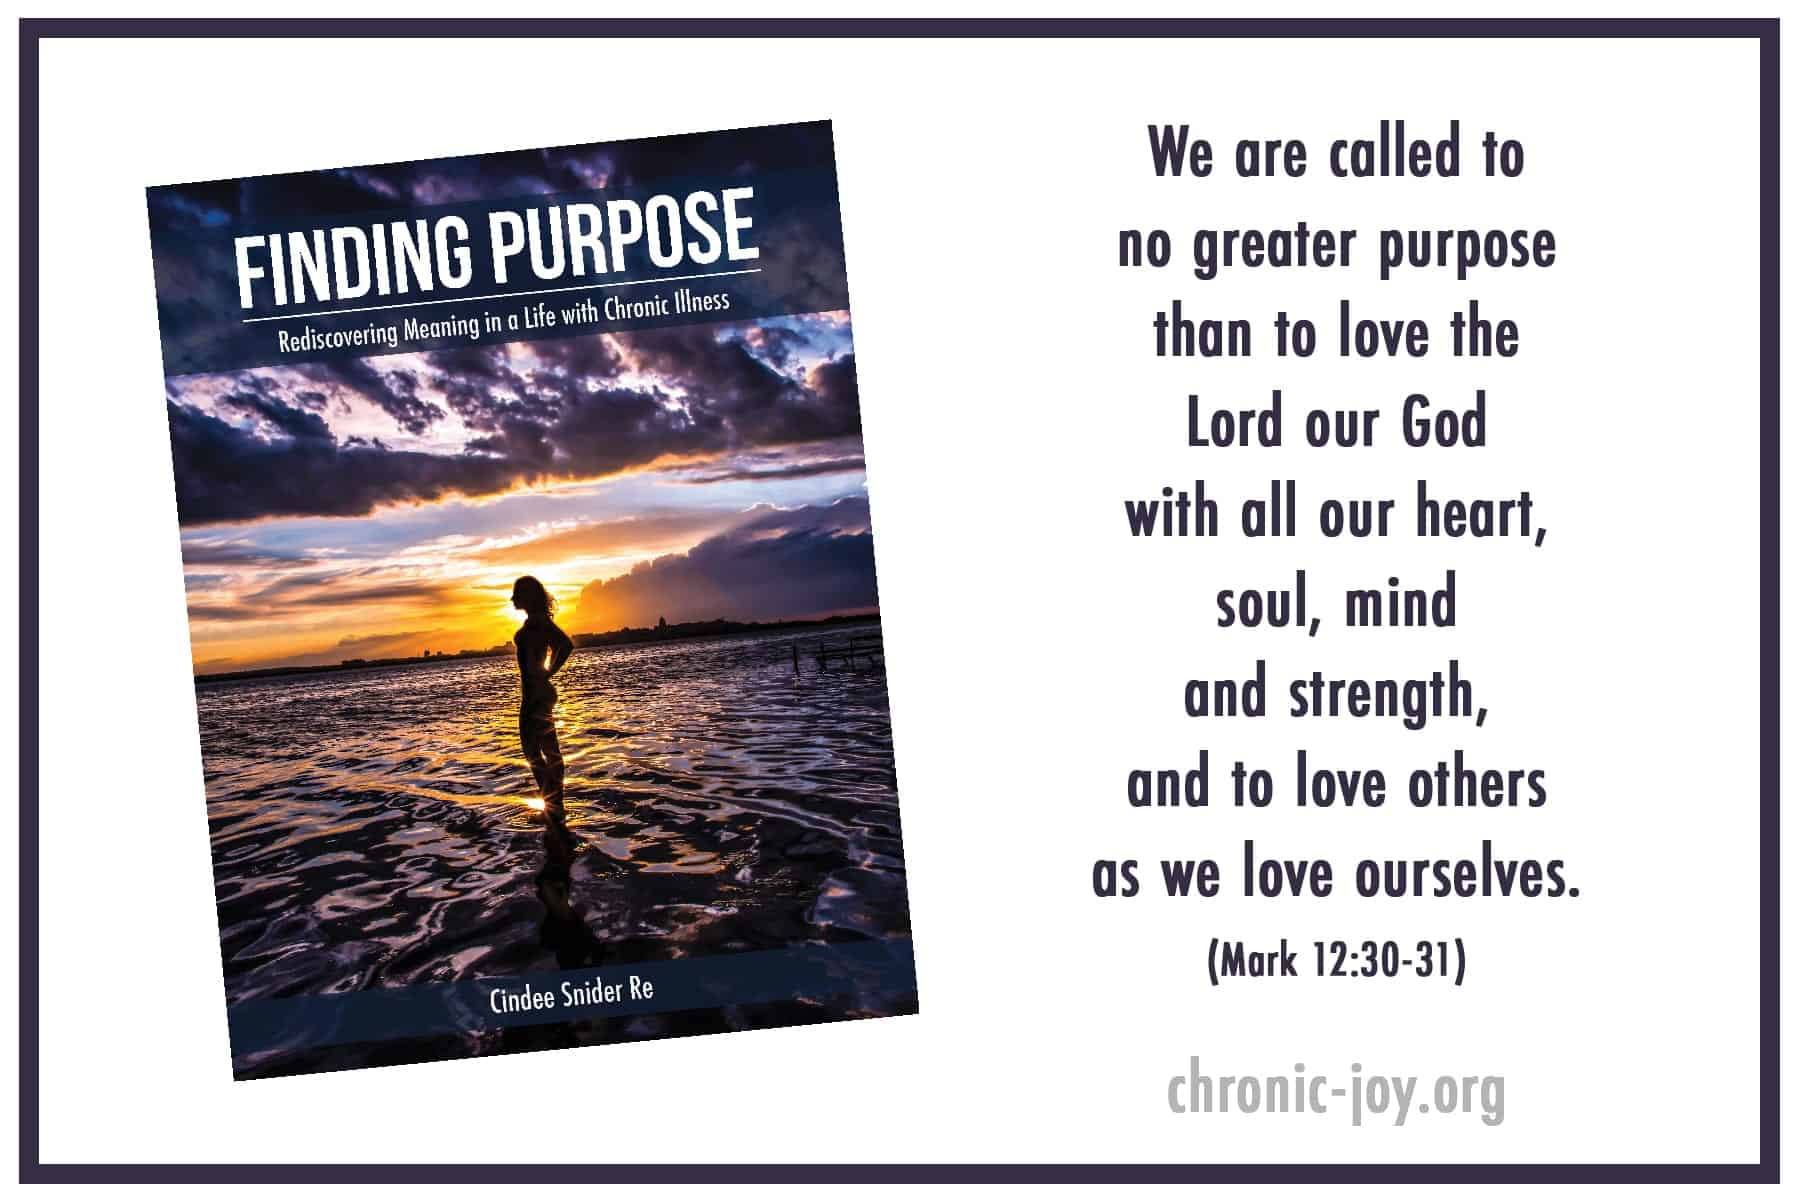 The Reason Behind Writing Finding Purpose